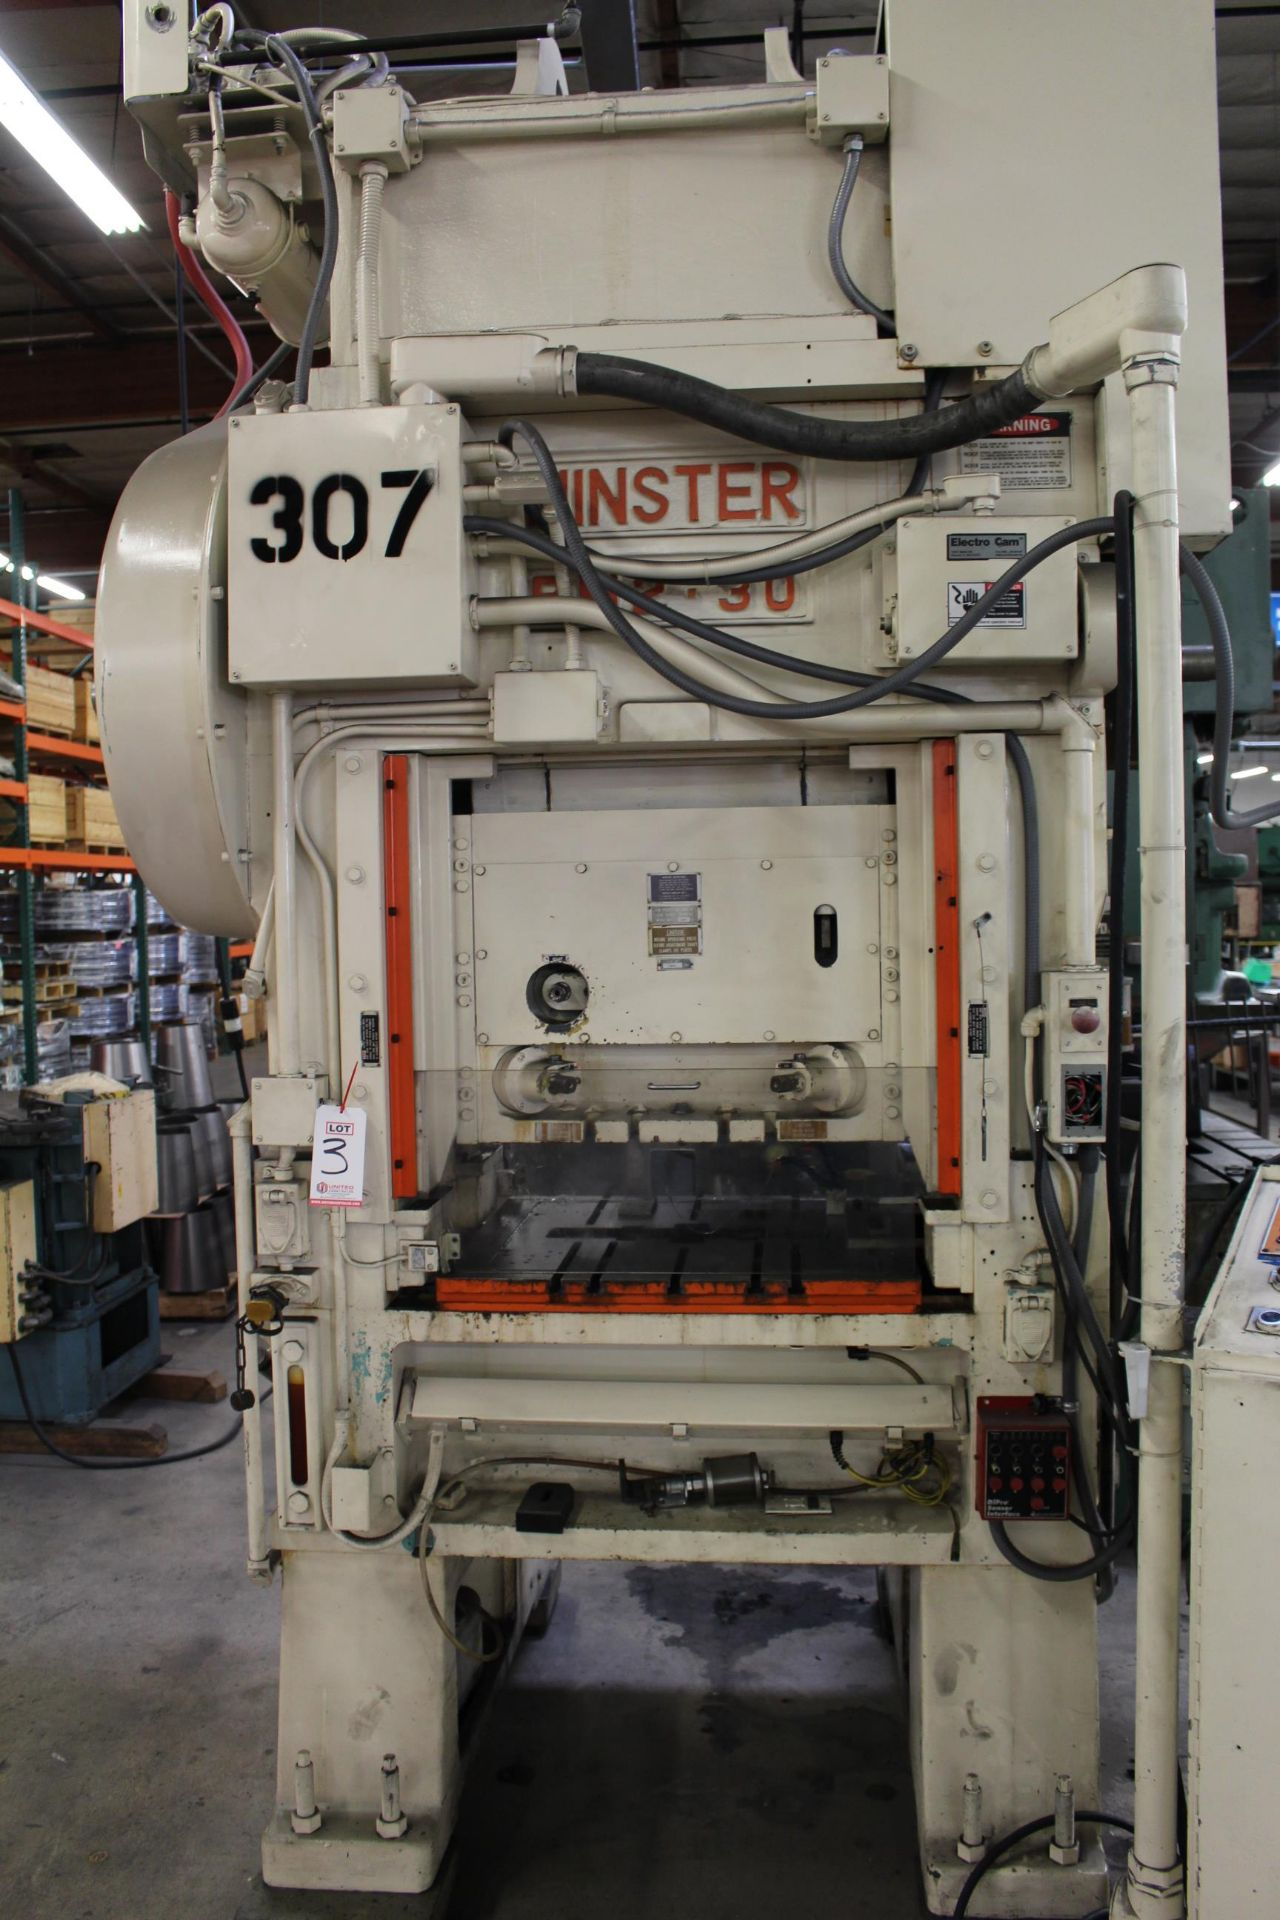 """MINSTER MODEL PM2-30-30 HIGH SPEED PUNCH PRESS, 30 TON CAPACITY, 30"""" X 20"""" BOLSTER, 0-1,000 SPM, 1- - Image 3 of 18"""